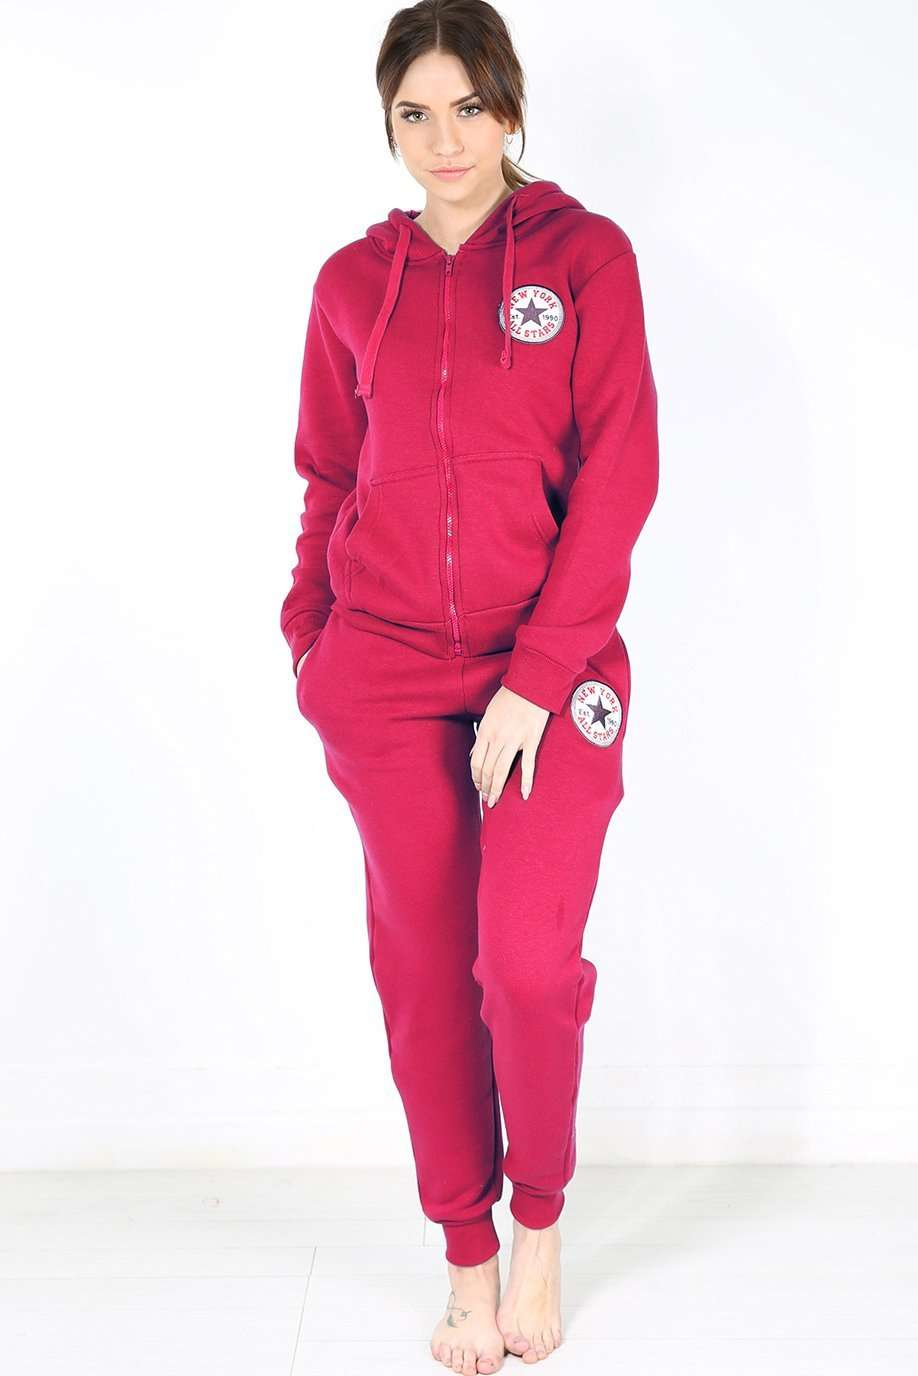 Paris All Star Lounge Wear Tracksuit - bejealous-com